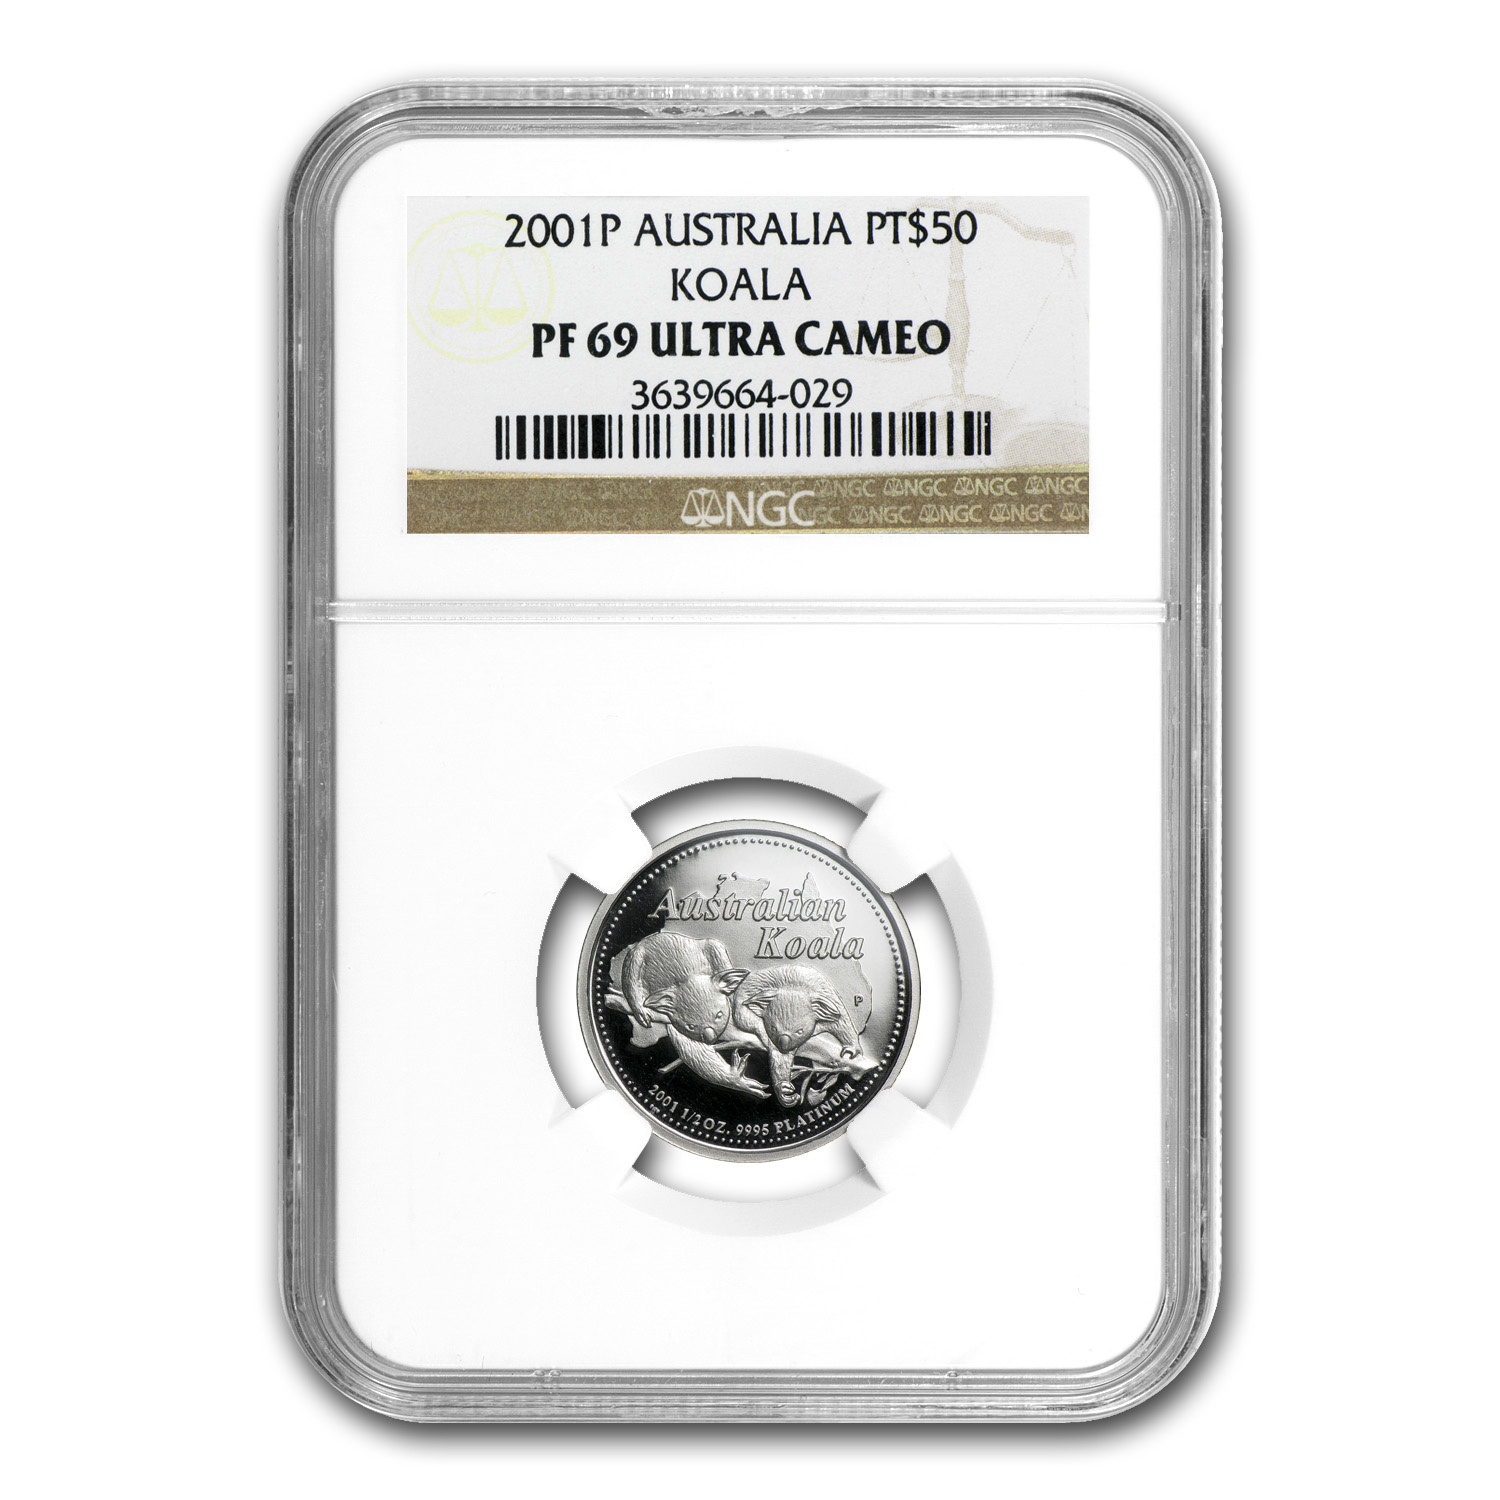 2001 Australia 1/2 oz Proof Platinum Koala PF-69 NGC